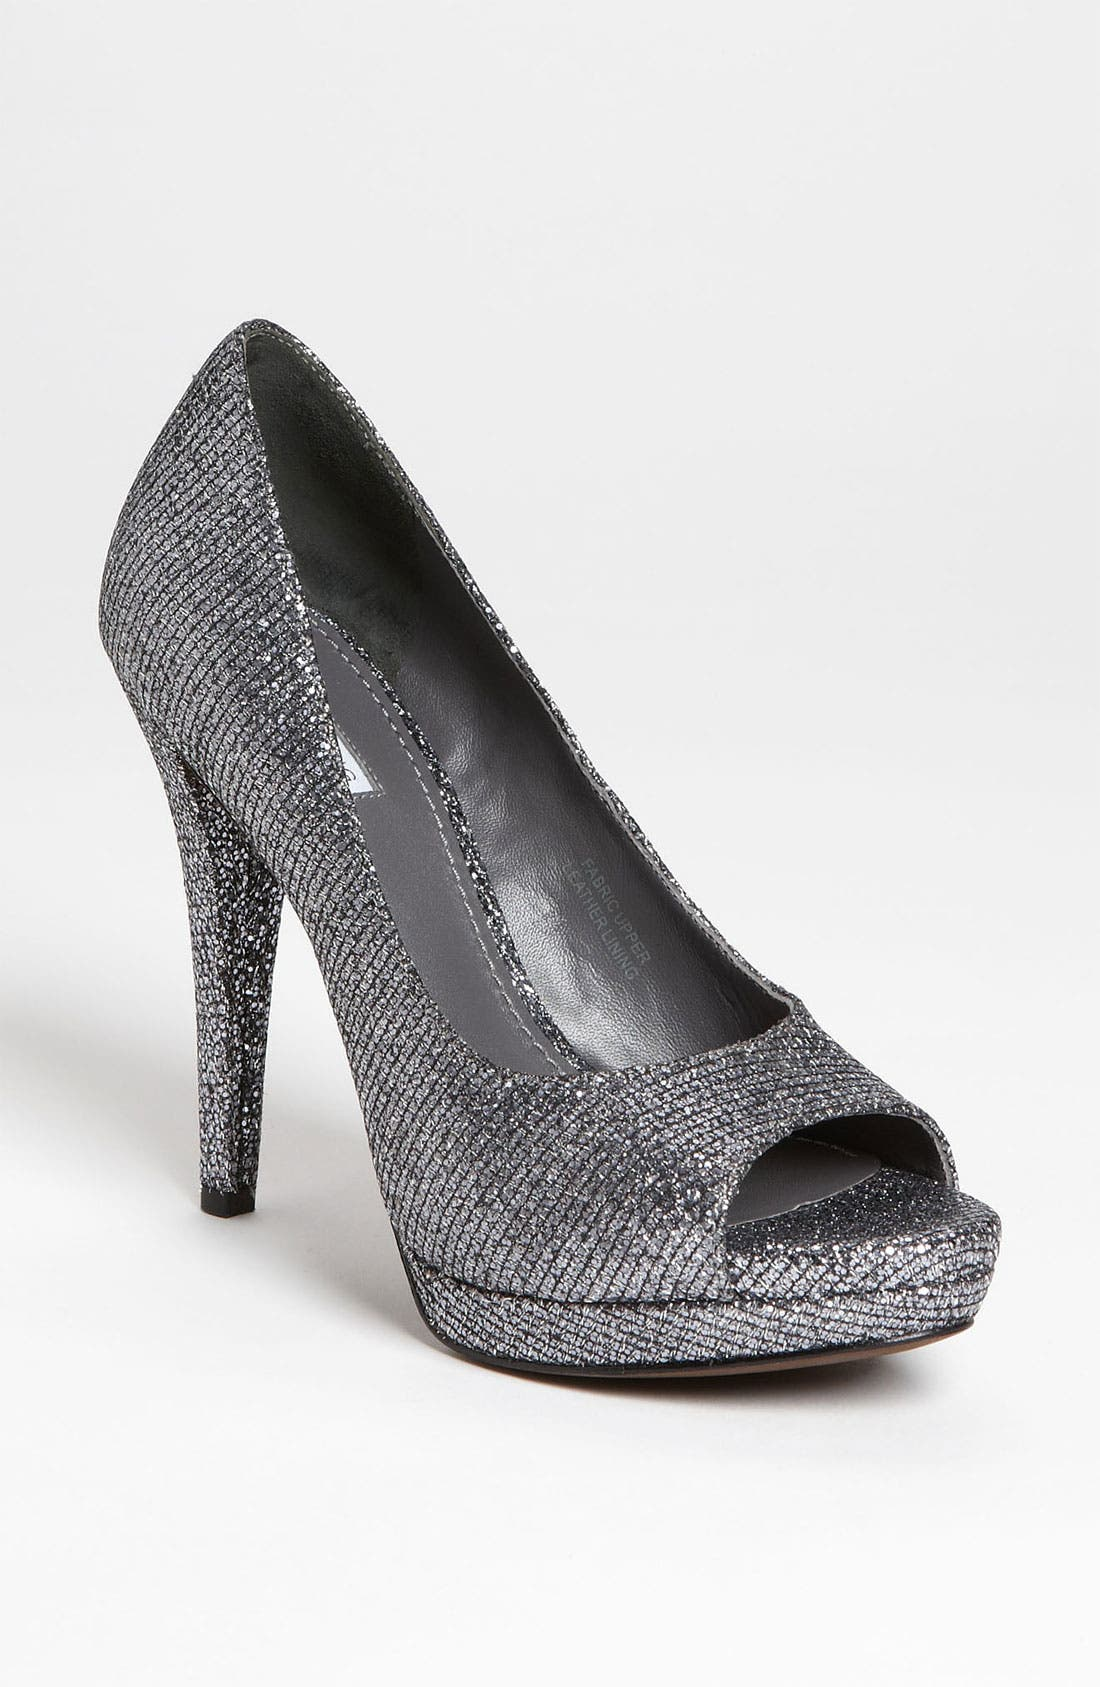 Alternate Image 1 Selected - Vera Wang Footwear 'Selima' Peep Toe Pump